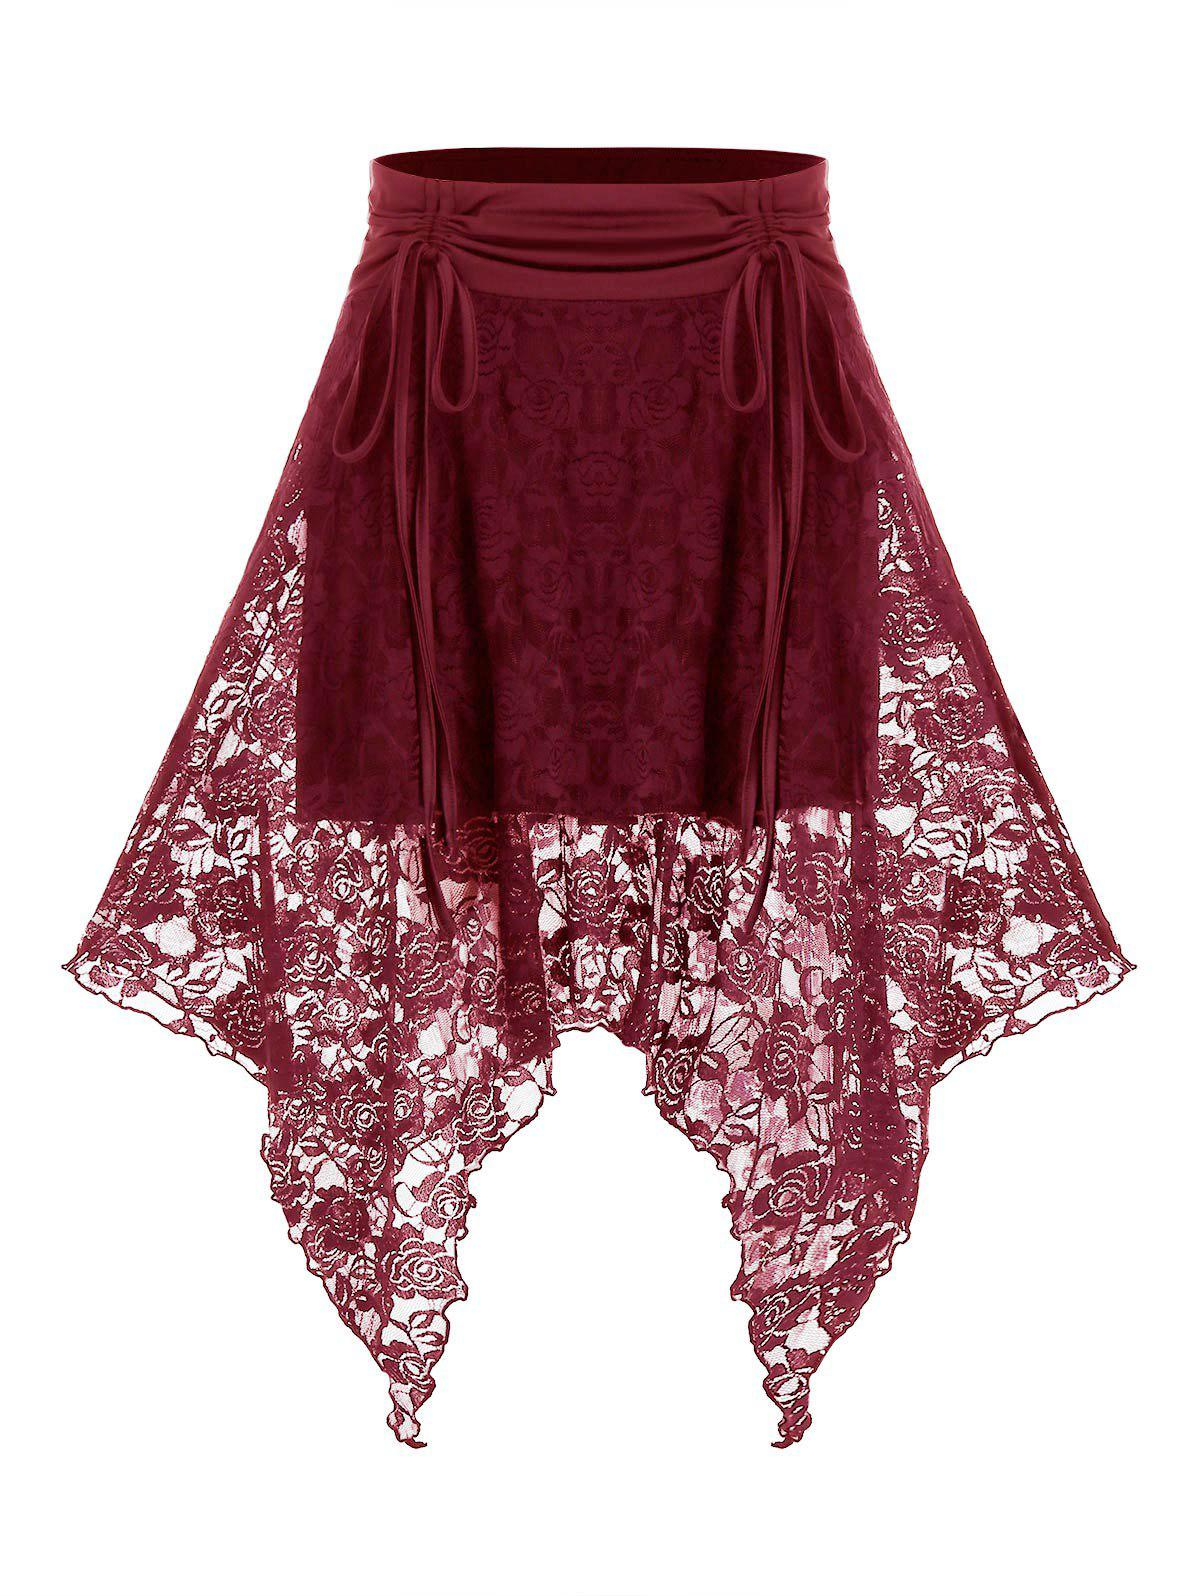 Plus Size Lace Handkerchief Cinched Tie High Rise Skirt фото